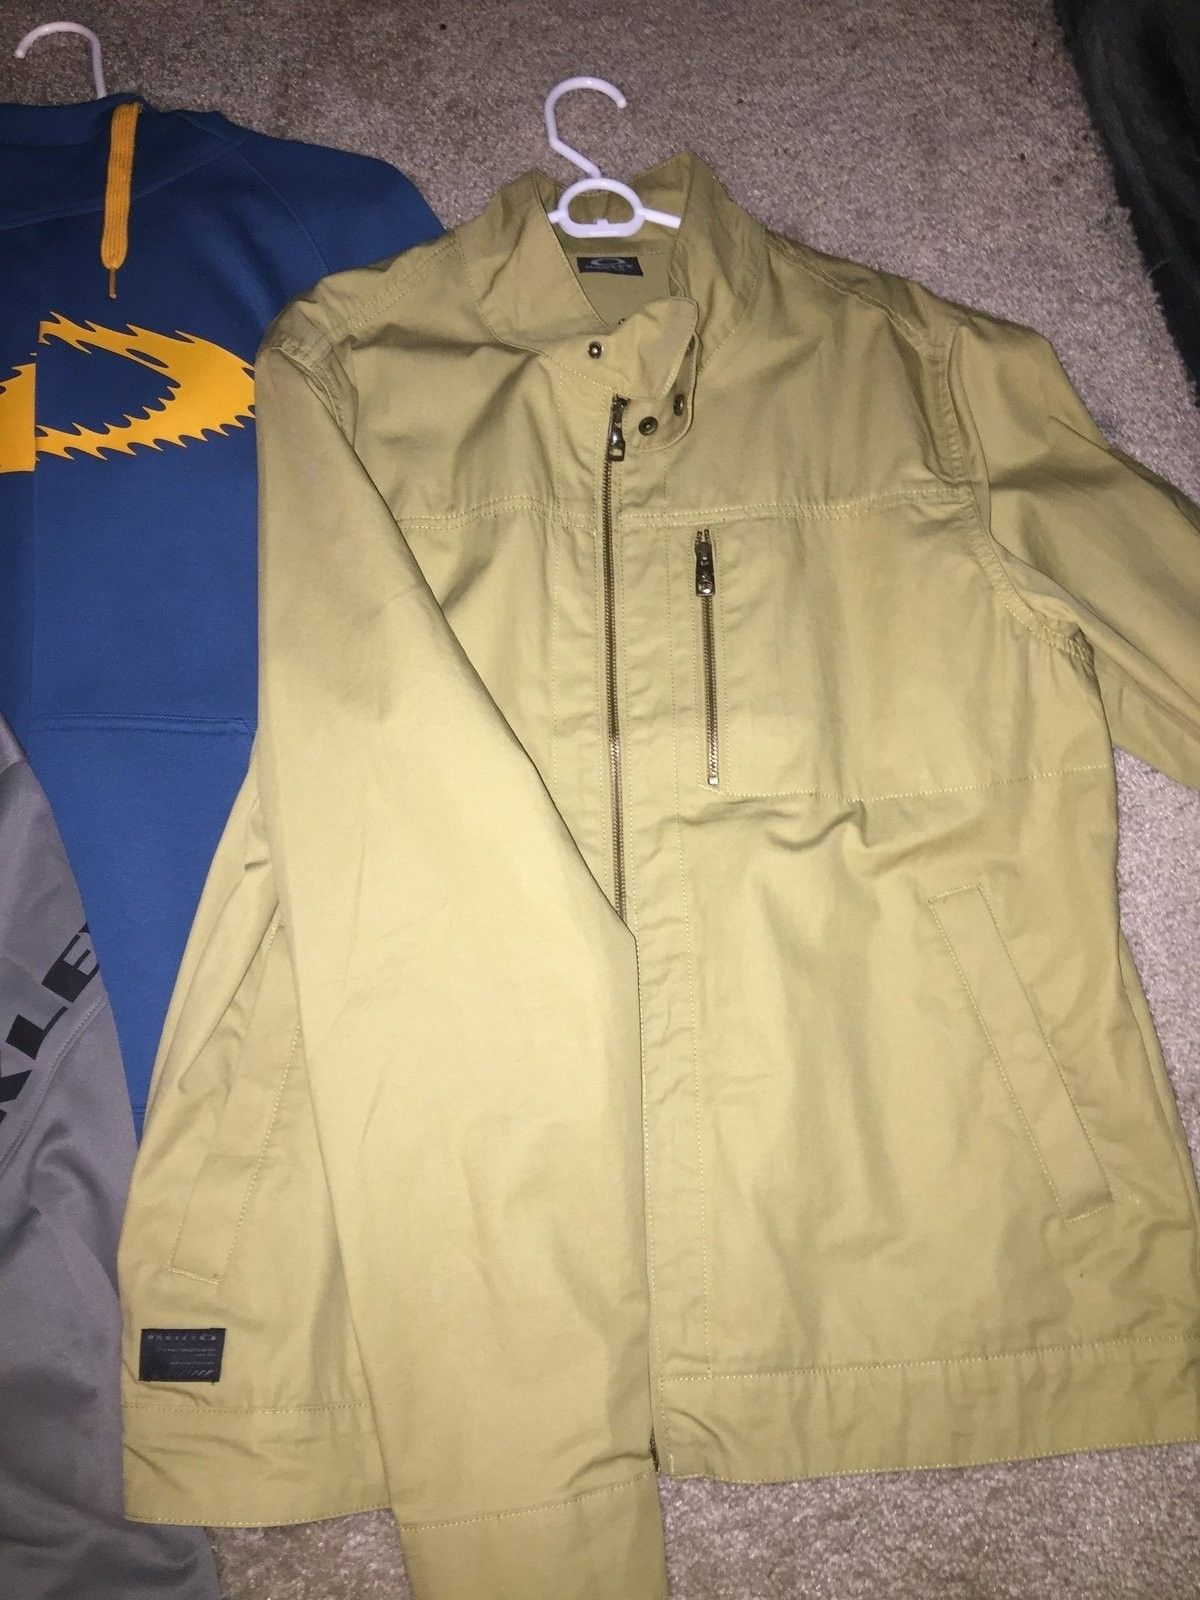 4 Oakley hoodies 1 Oakley jacket new without tags - image.jpeg